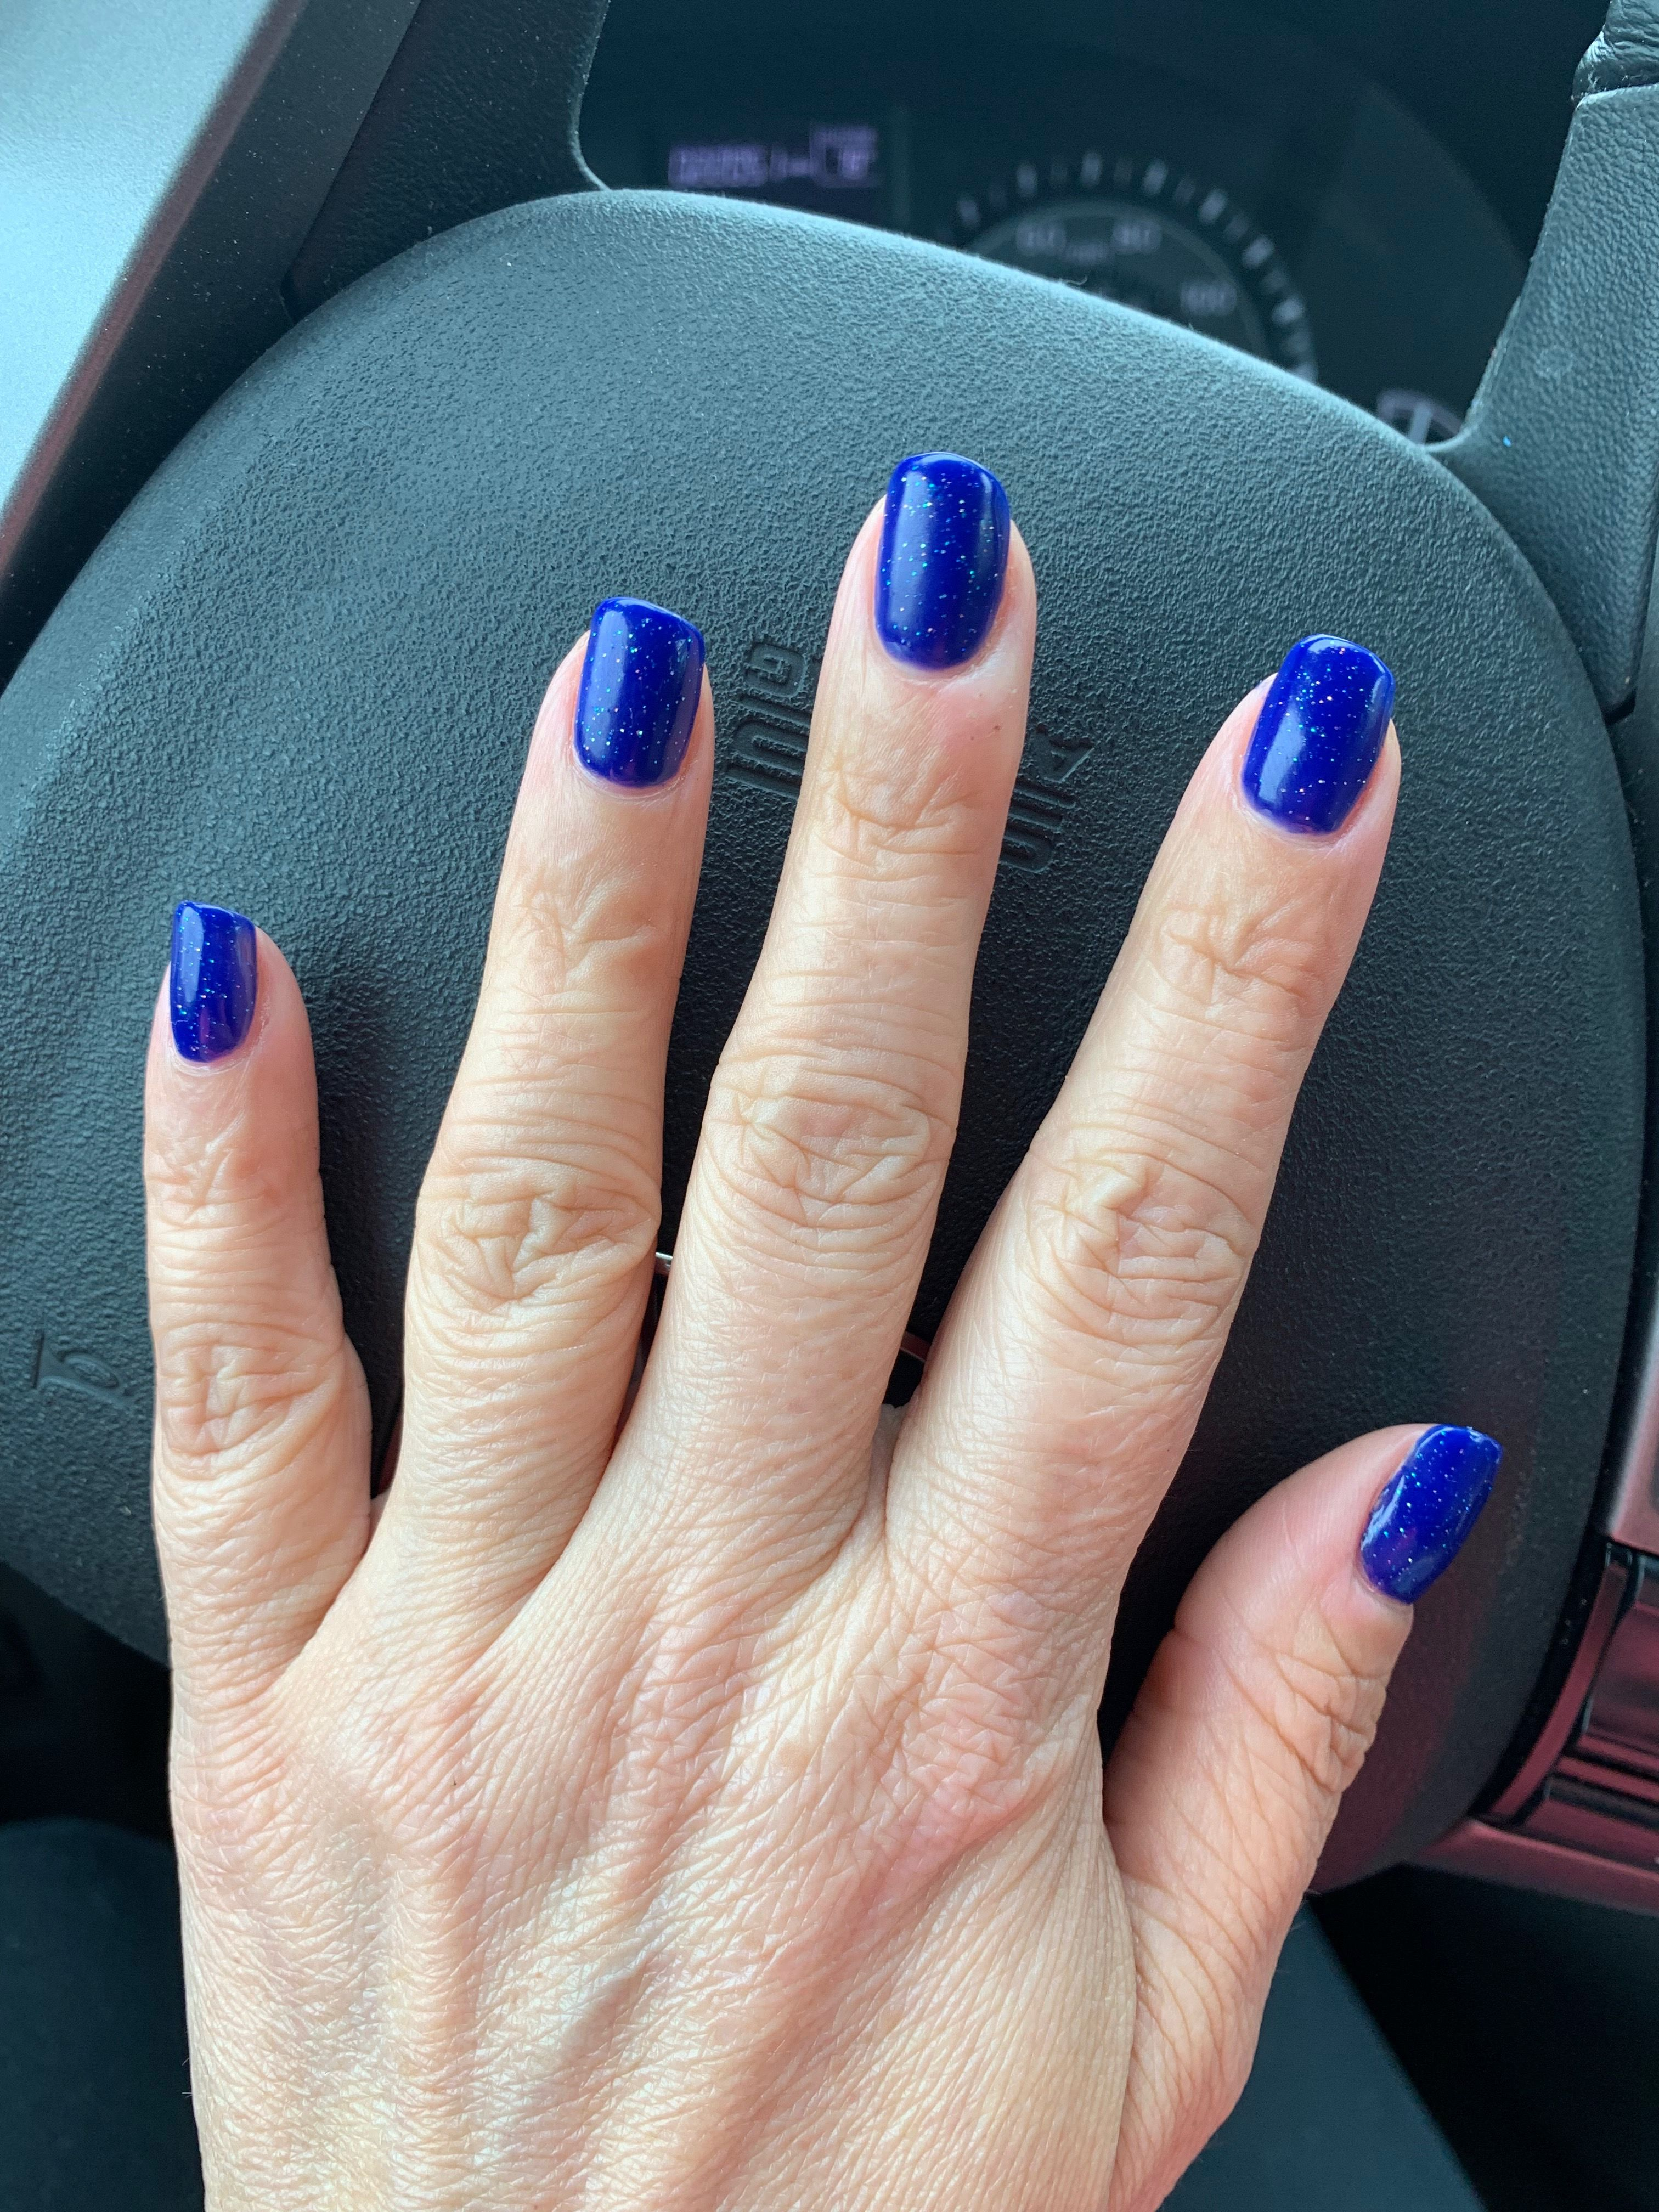 Cnd Shellac Blue Moon With Sparkle Topcoat Gel Nails Cnd Shellac Nail Designs